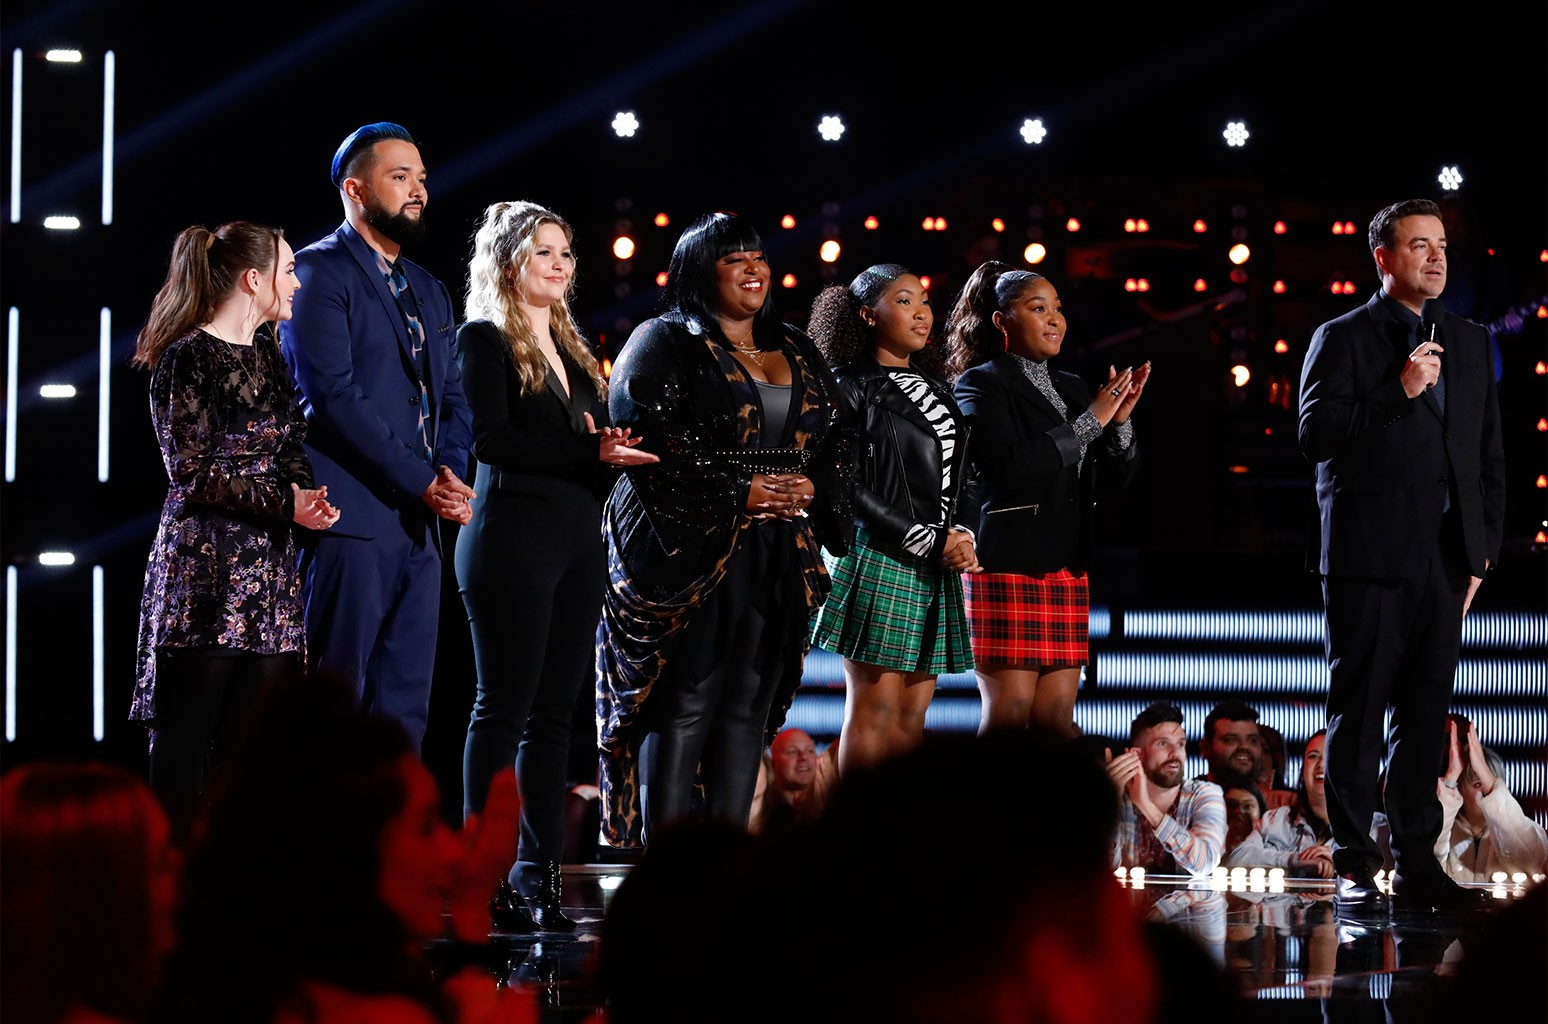 Kat Hammock, Will Breman, Marybeth Byrd, Rose Short, Hello Sunday and Carson Daly on The Voice on Dec. 10, 2019.